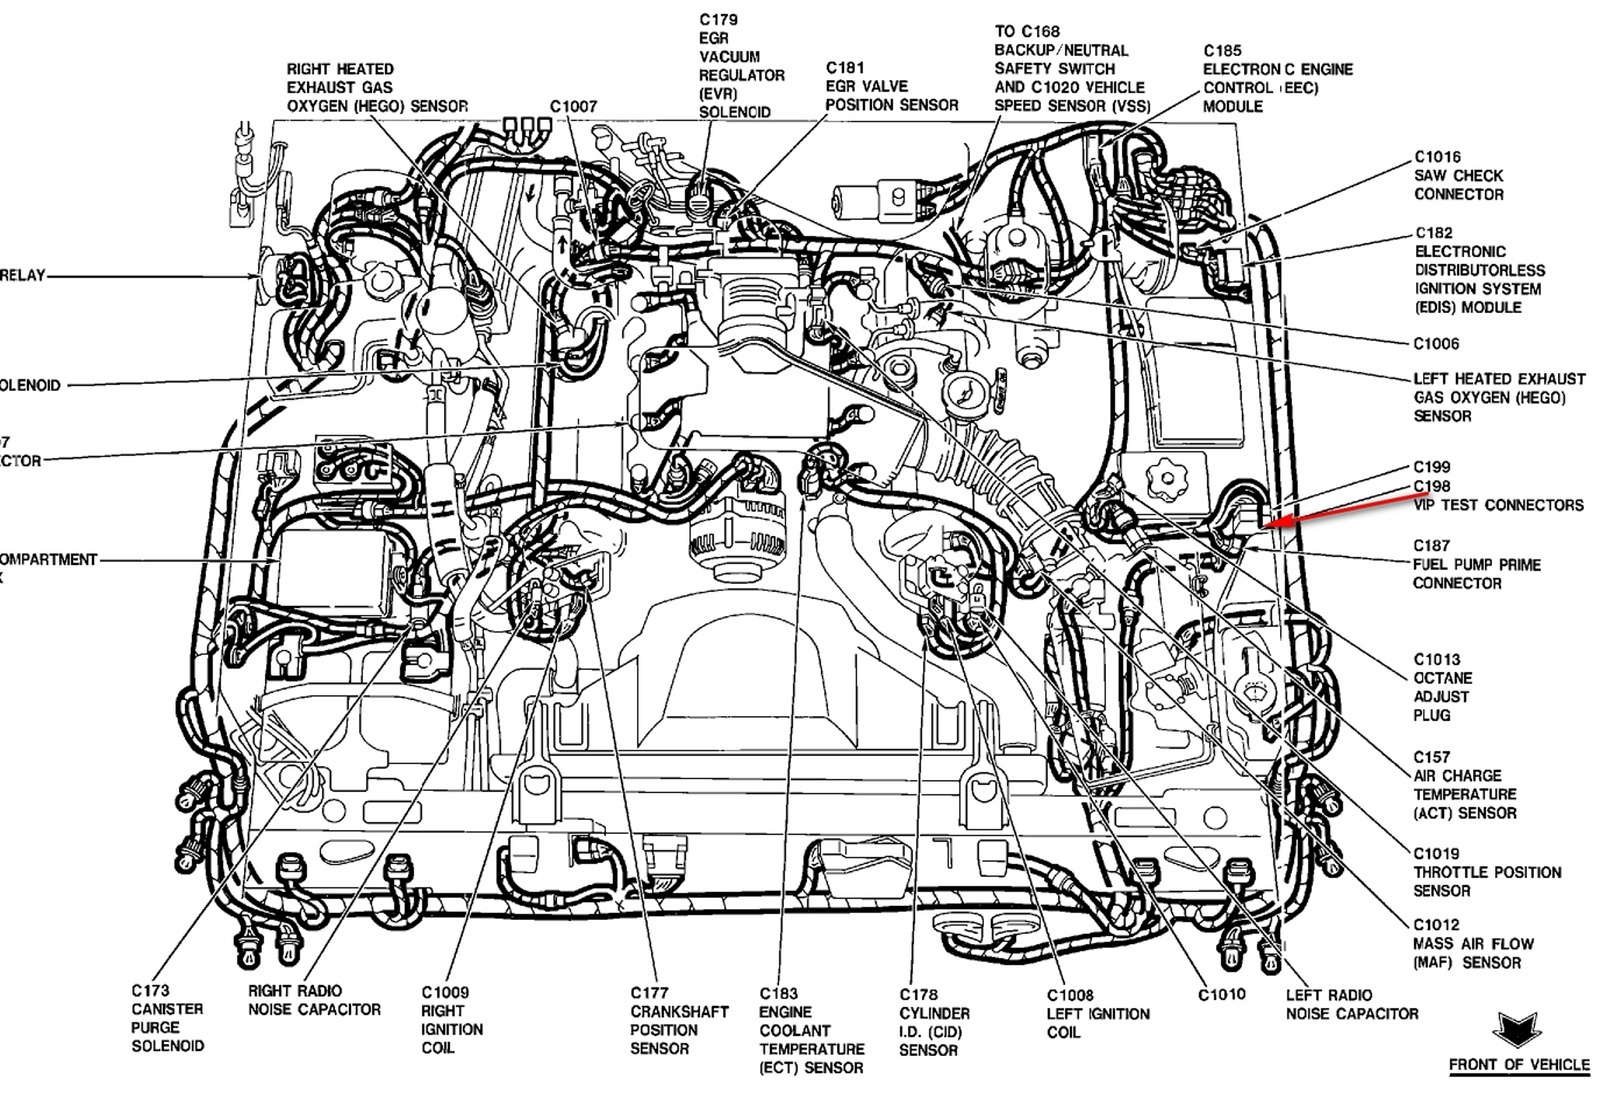 2005 Chevrolet Impala Engine Diagram - Wiring Diagram Schema mean-favor -  mean-favor.dragomarino.it | 2005 Impala Engine Wiring Harness Diagram |  | mean-favor.dragomarino.it